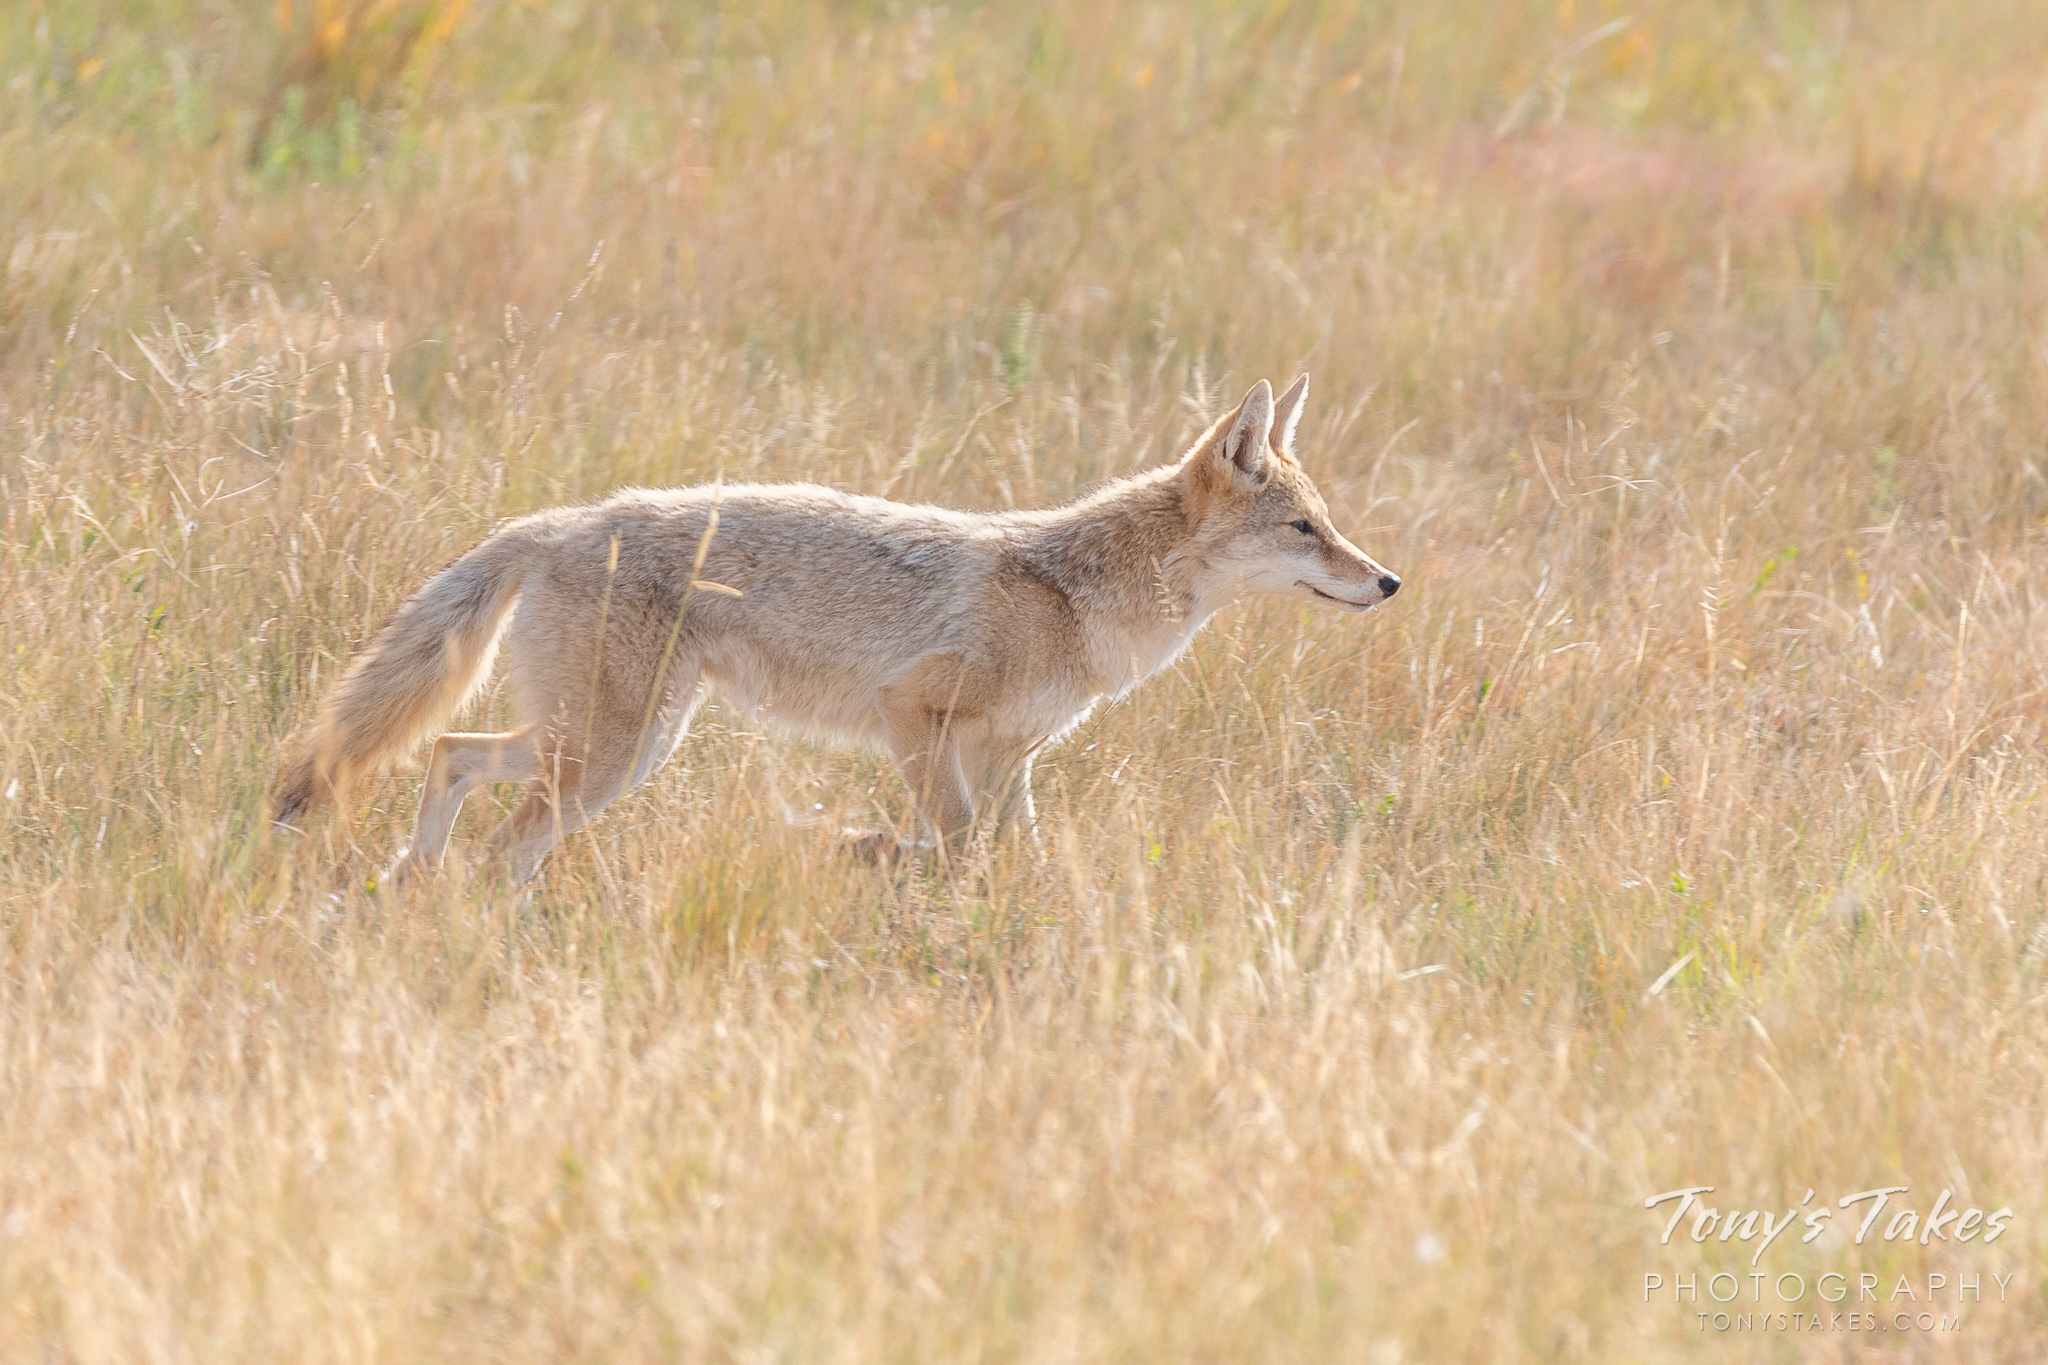 Coyote hunts through the grass for a meal